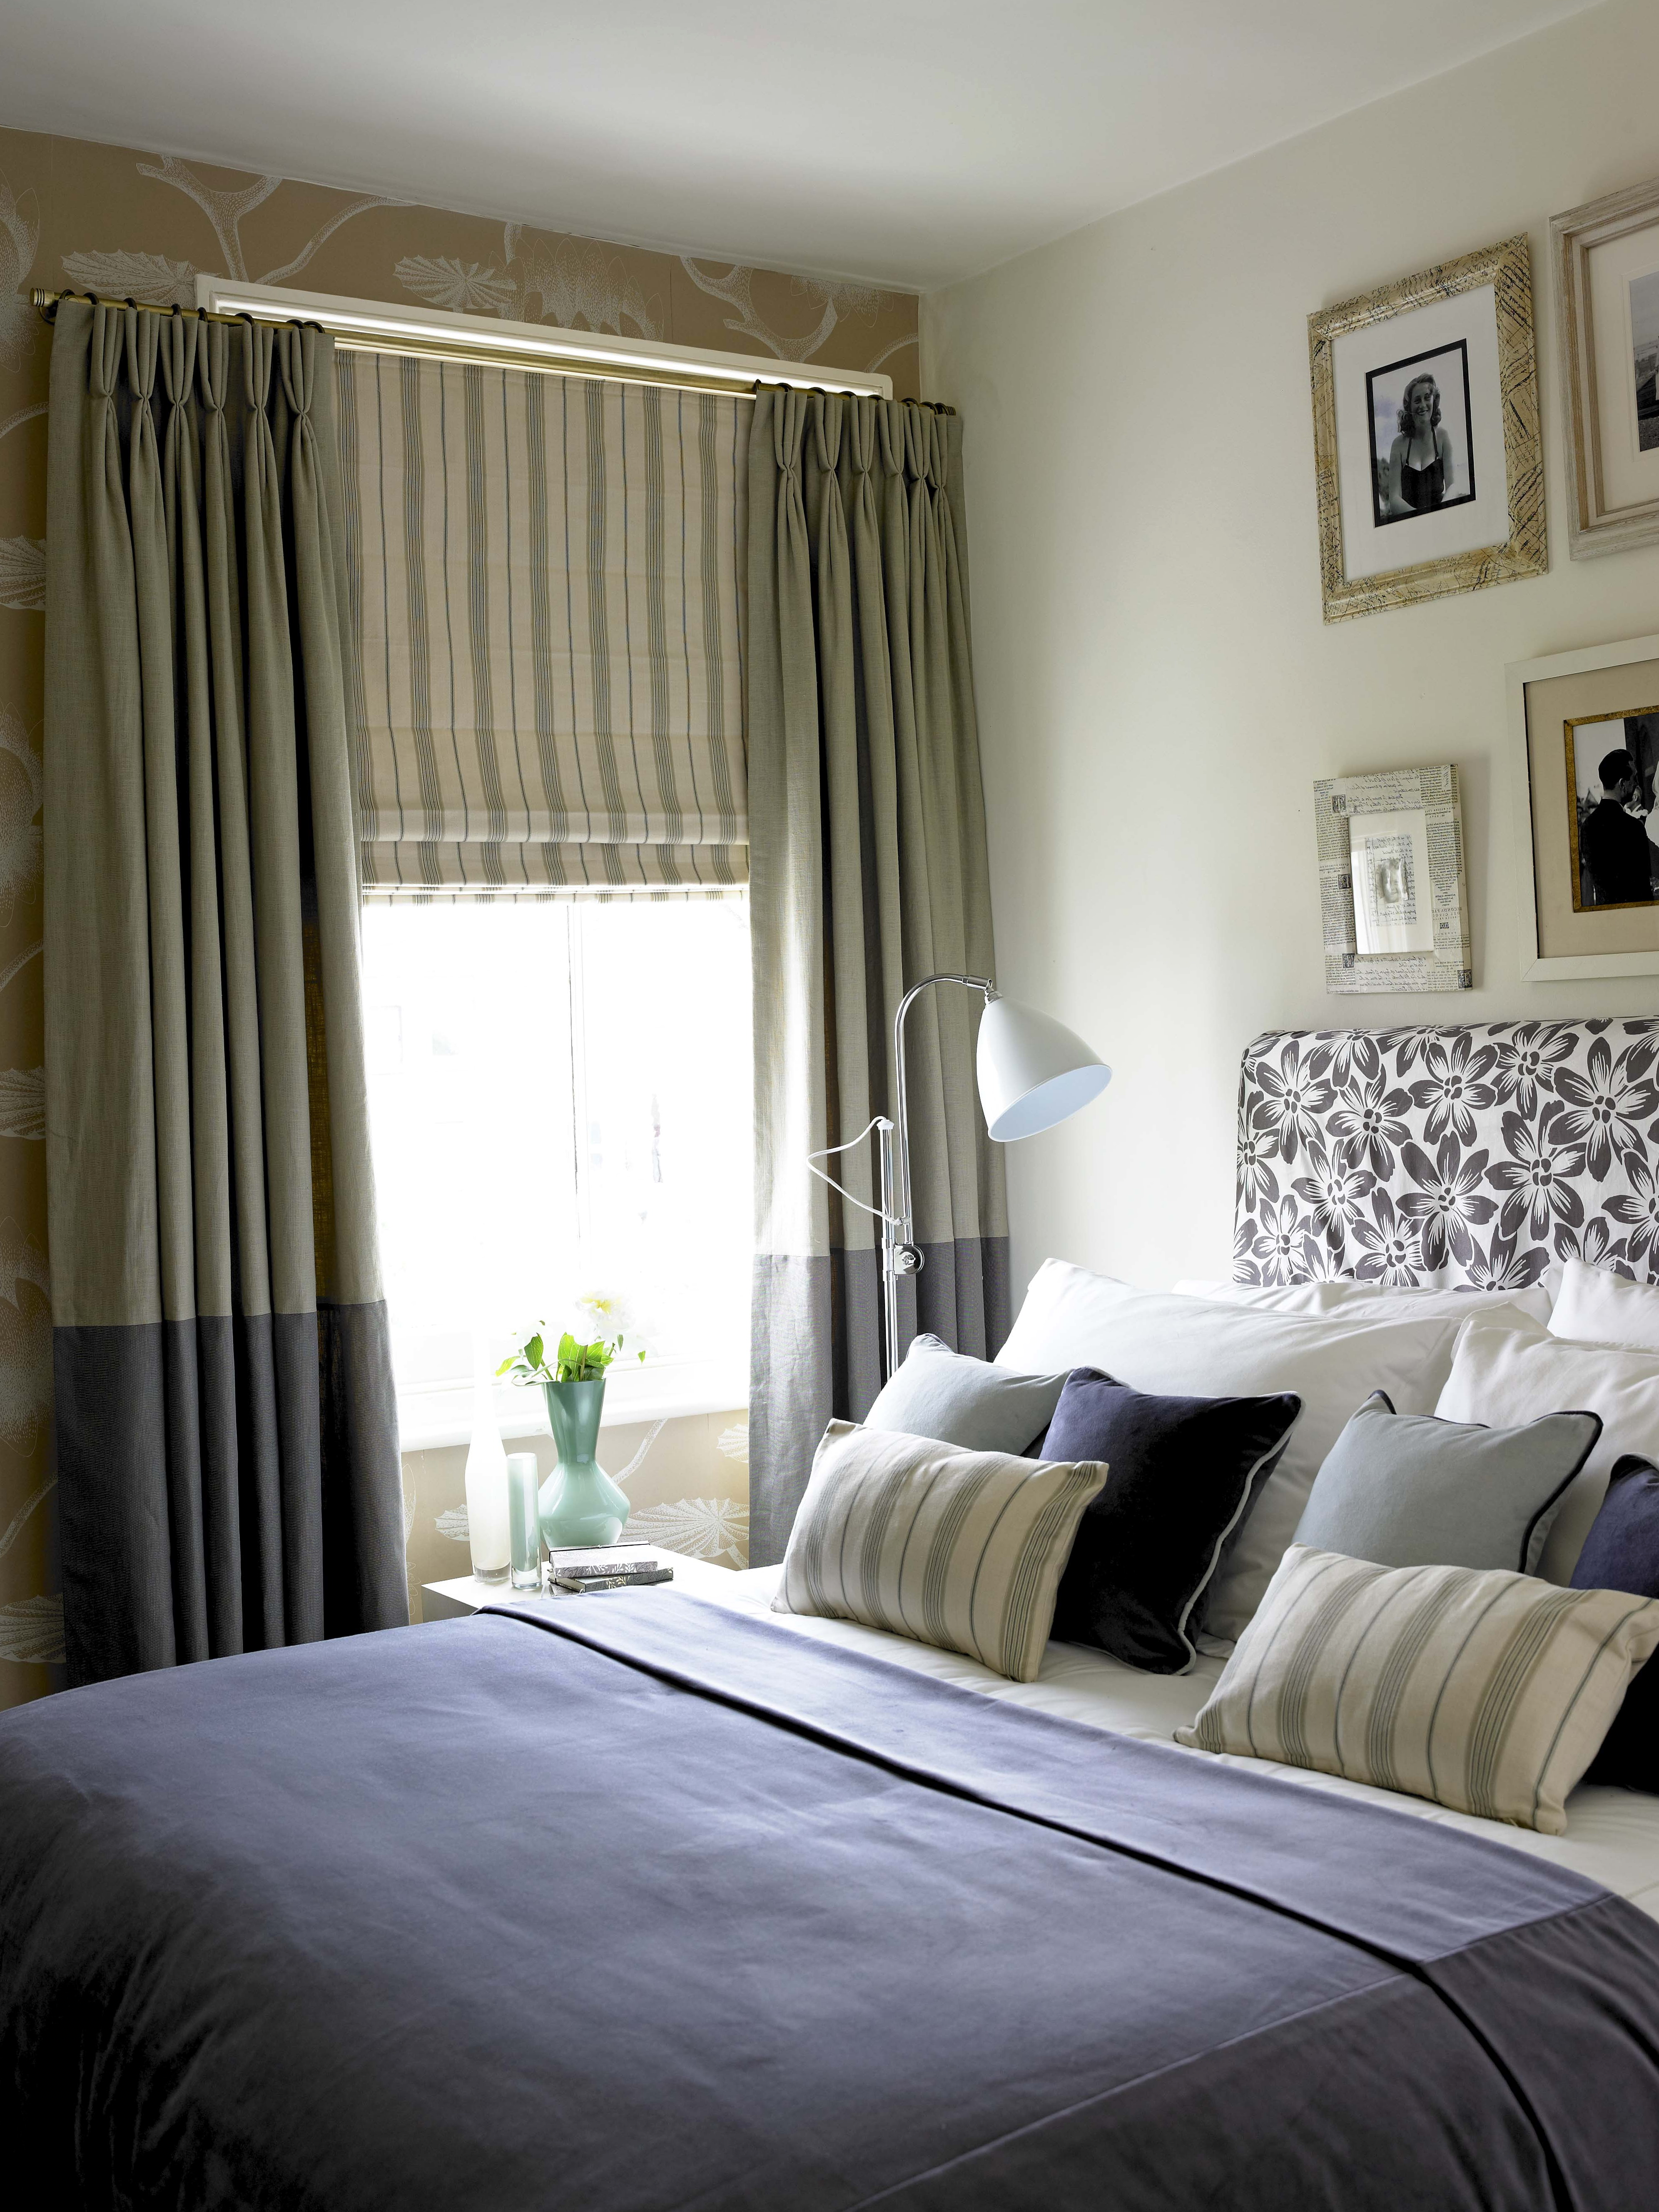 Blinds And Curtains Combination Bedroom | Home Design Ideas